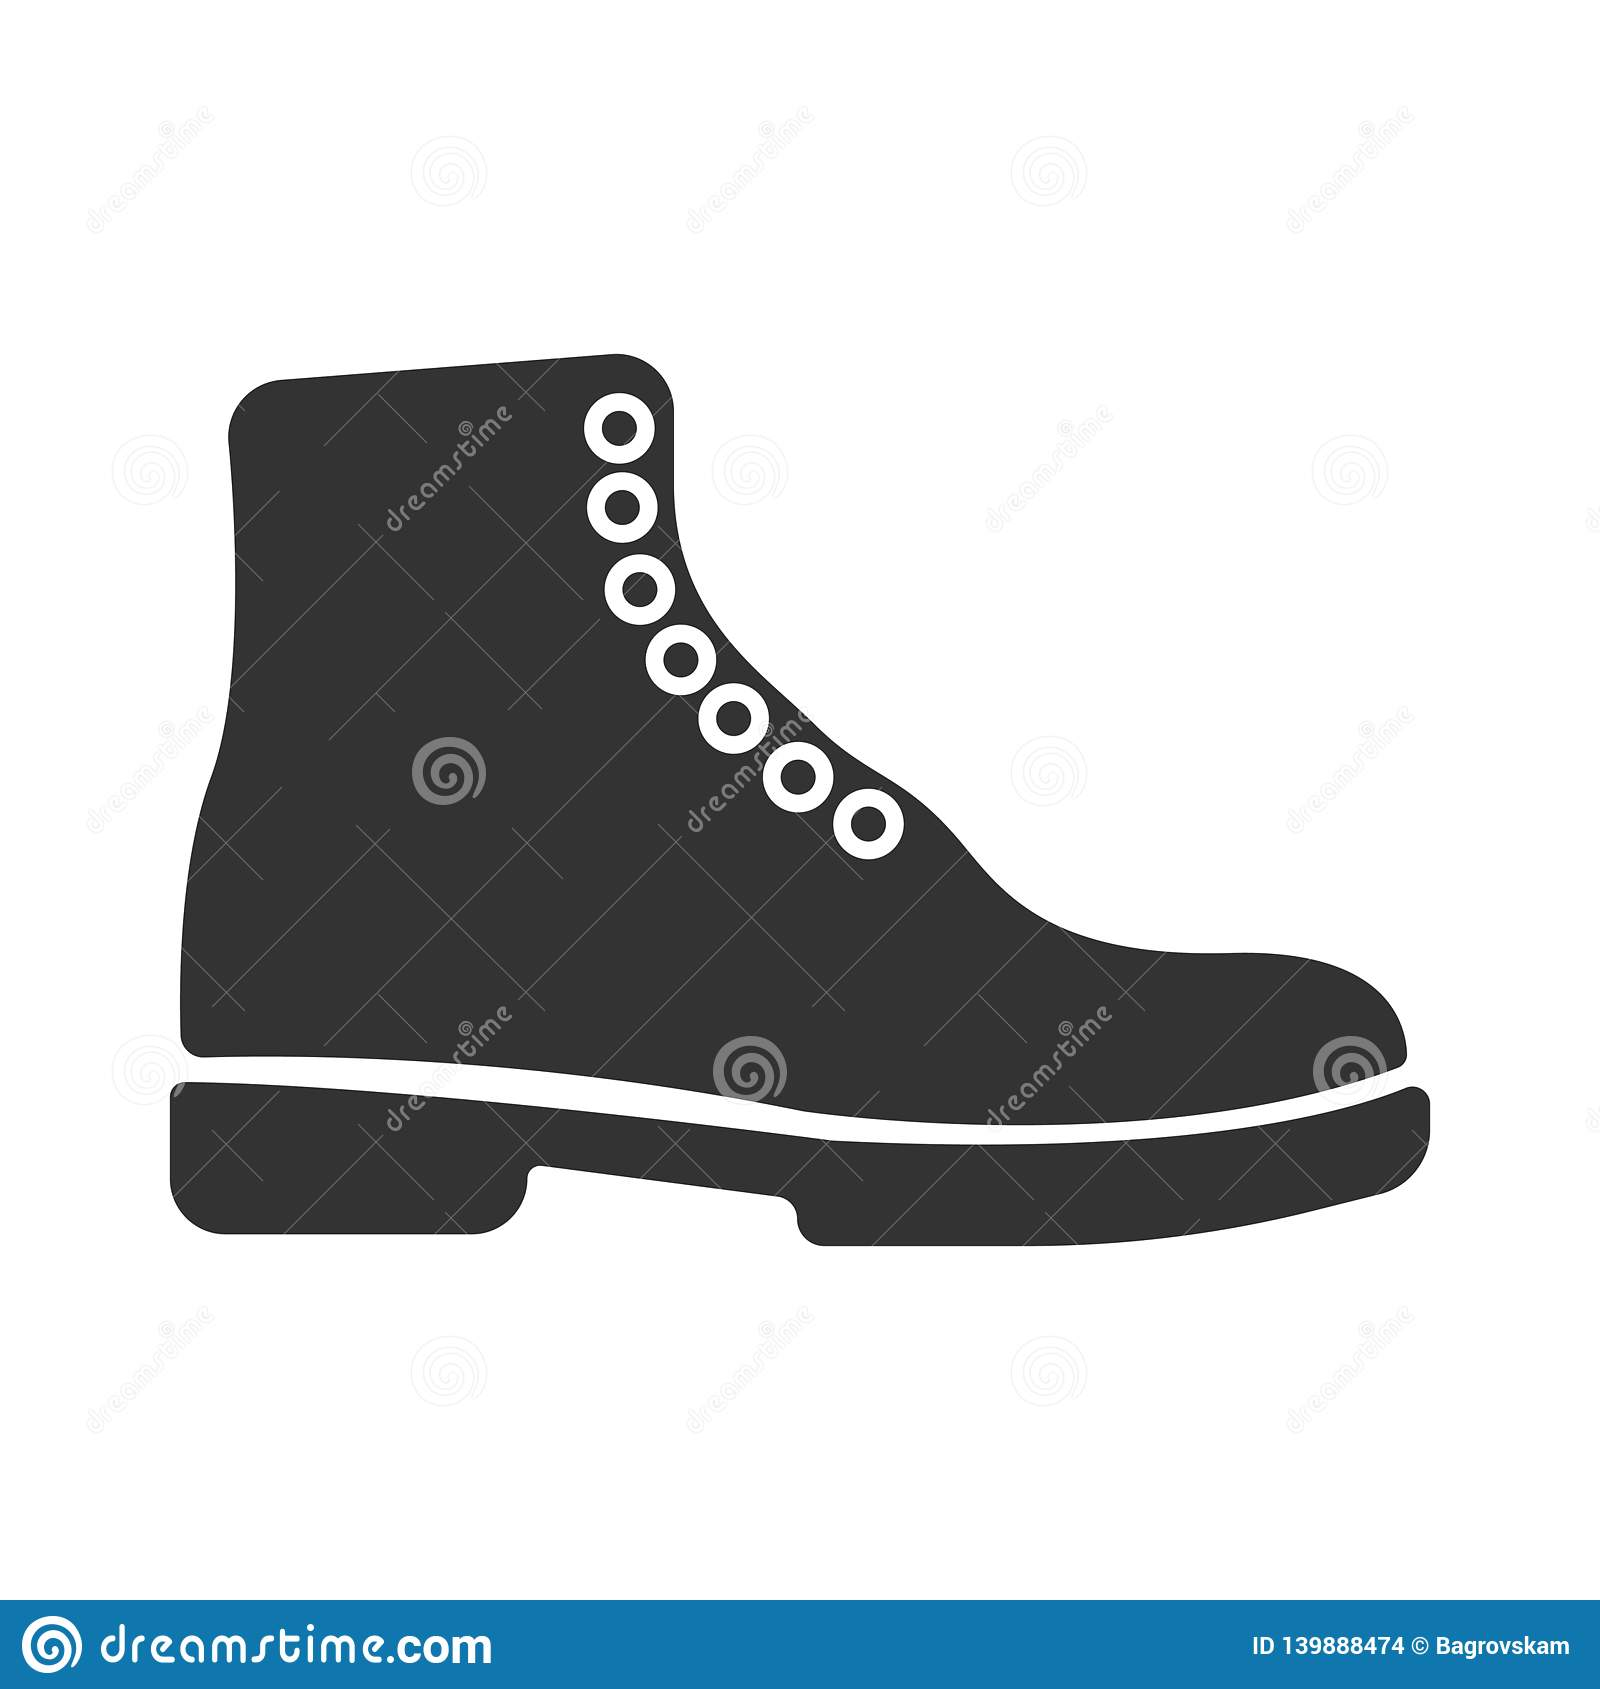 Simple black vector boots icon. Concept tourism, store, shop. Hiking boot icon, vector illustration design. Winter boots